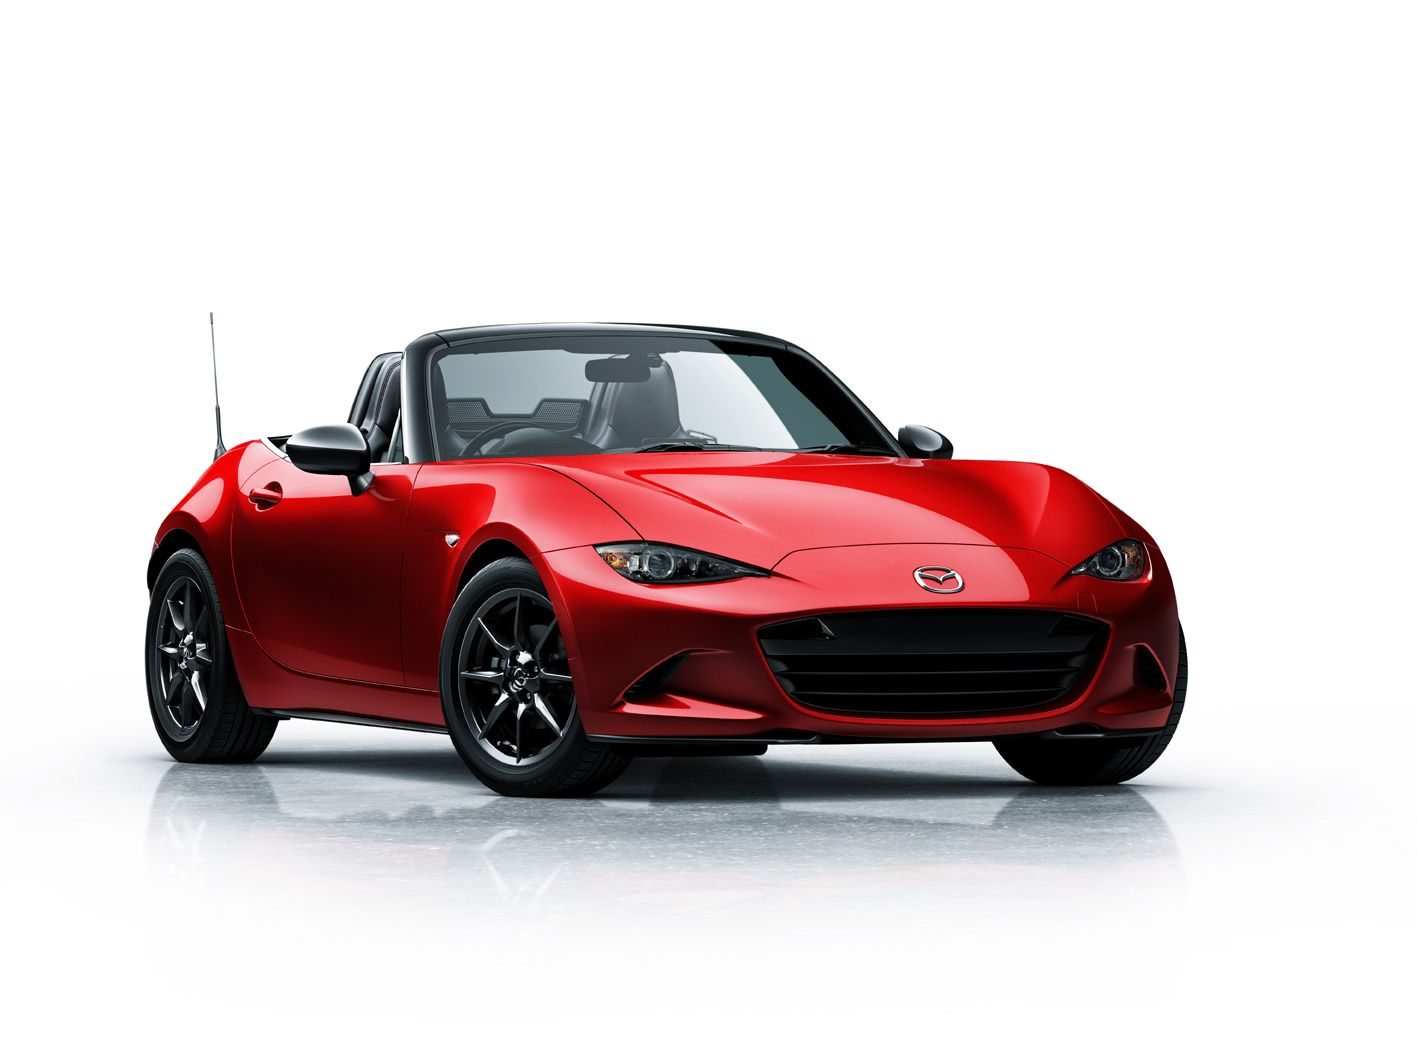 2016 mazda mx 5 miata specs and price the new 2016 mazda mx 5 miata is going to be a complete hit ever since the last 25 years the producer has